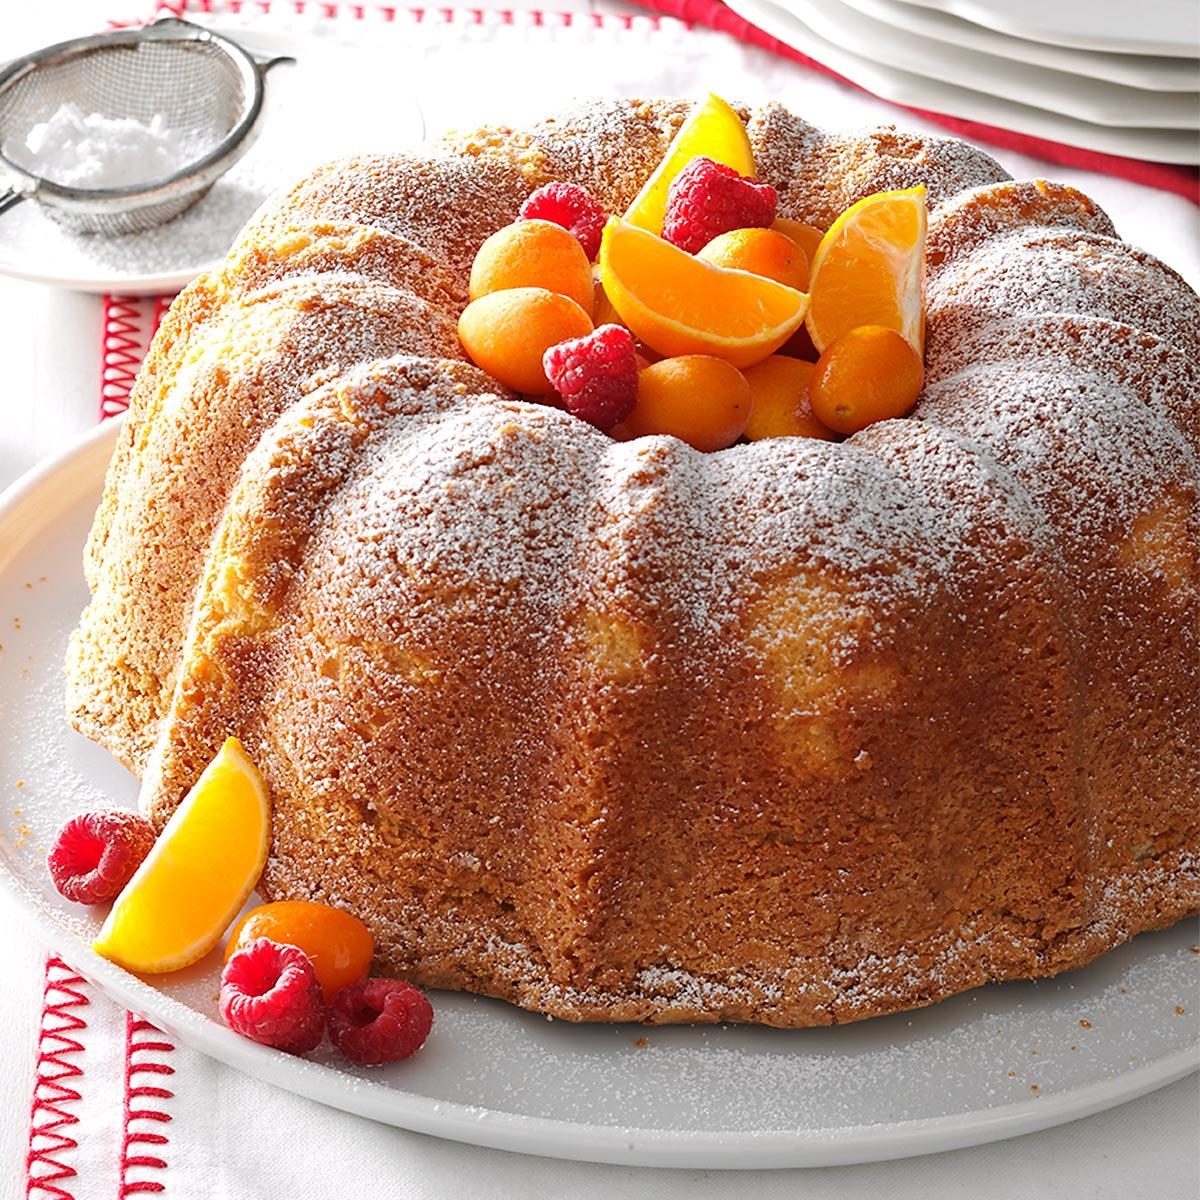 Best Sour Cream Bundt Cake Recipe